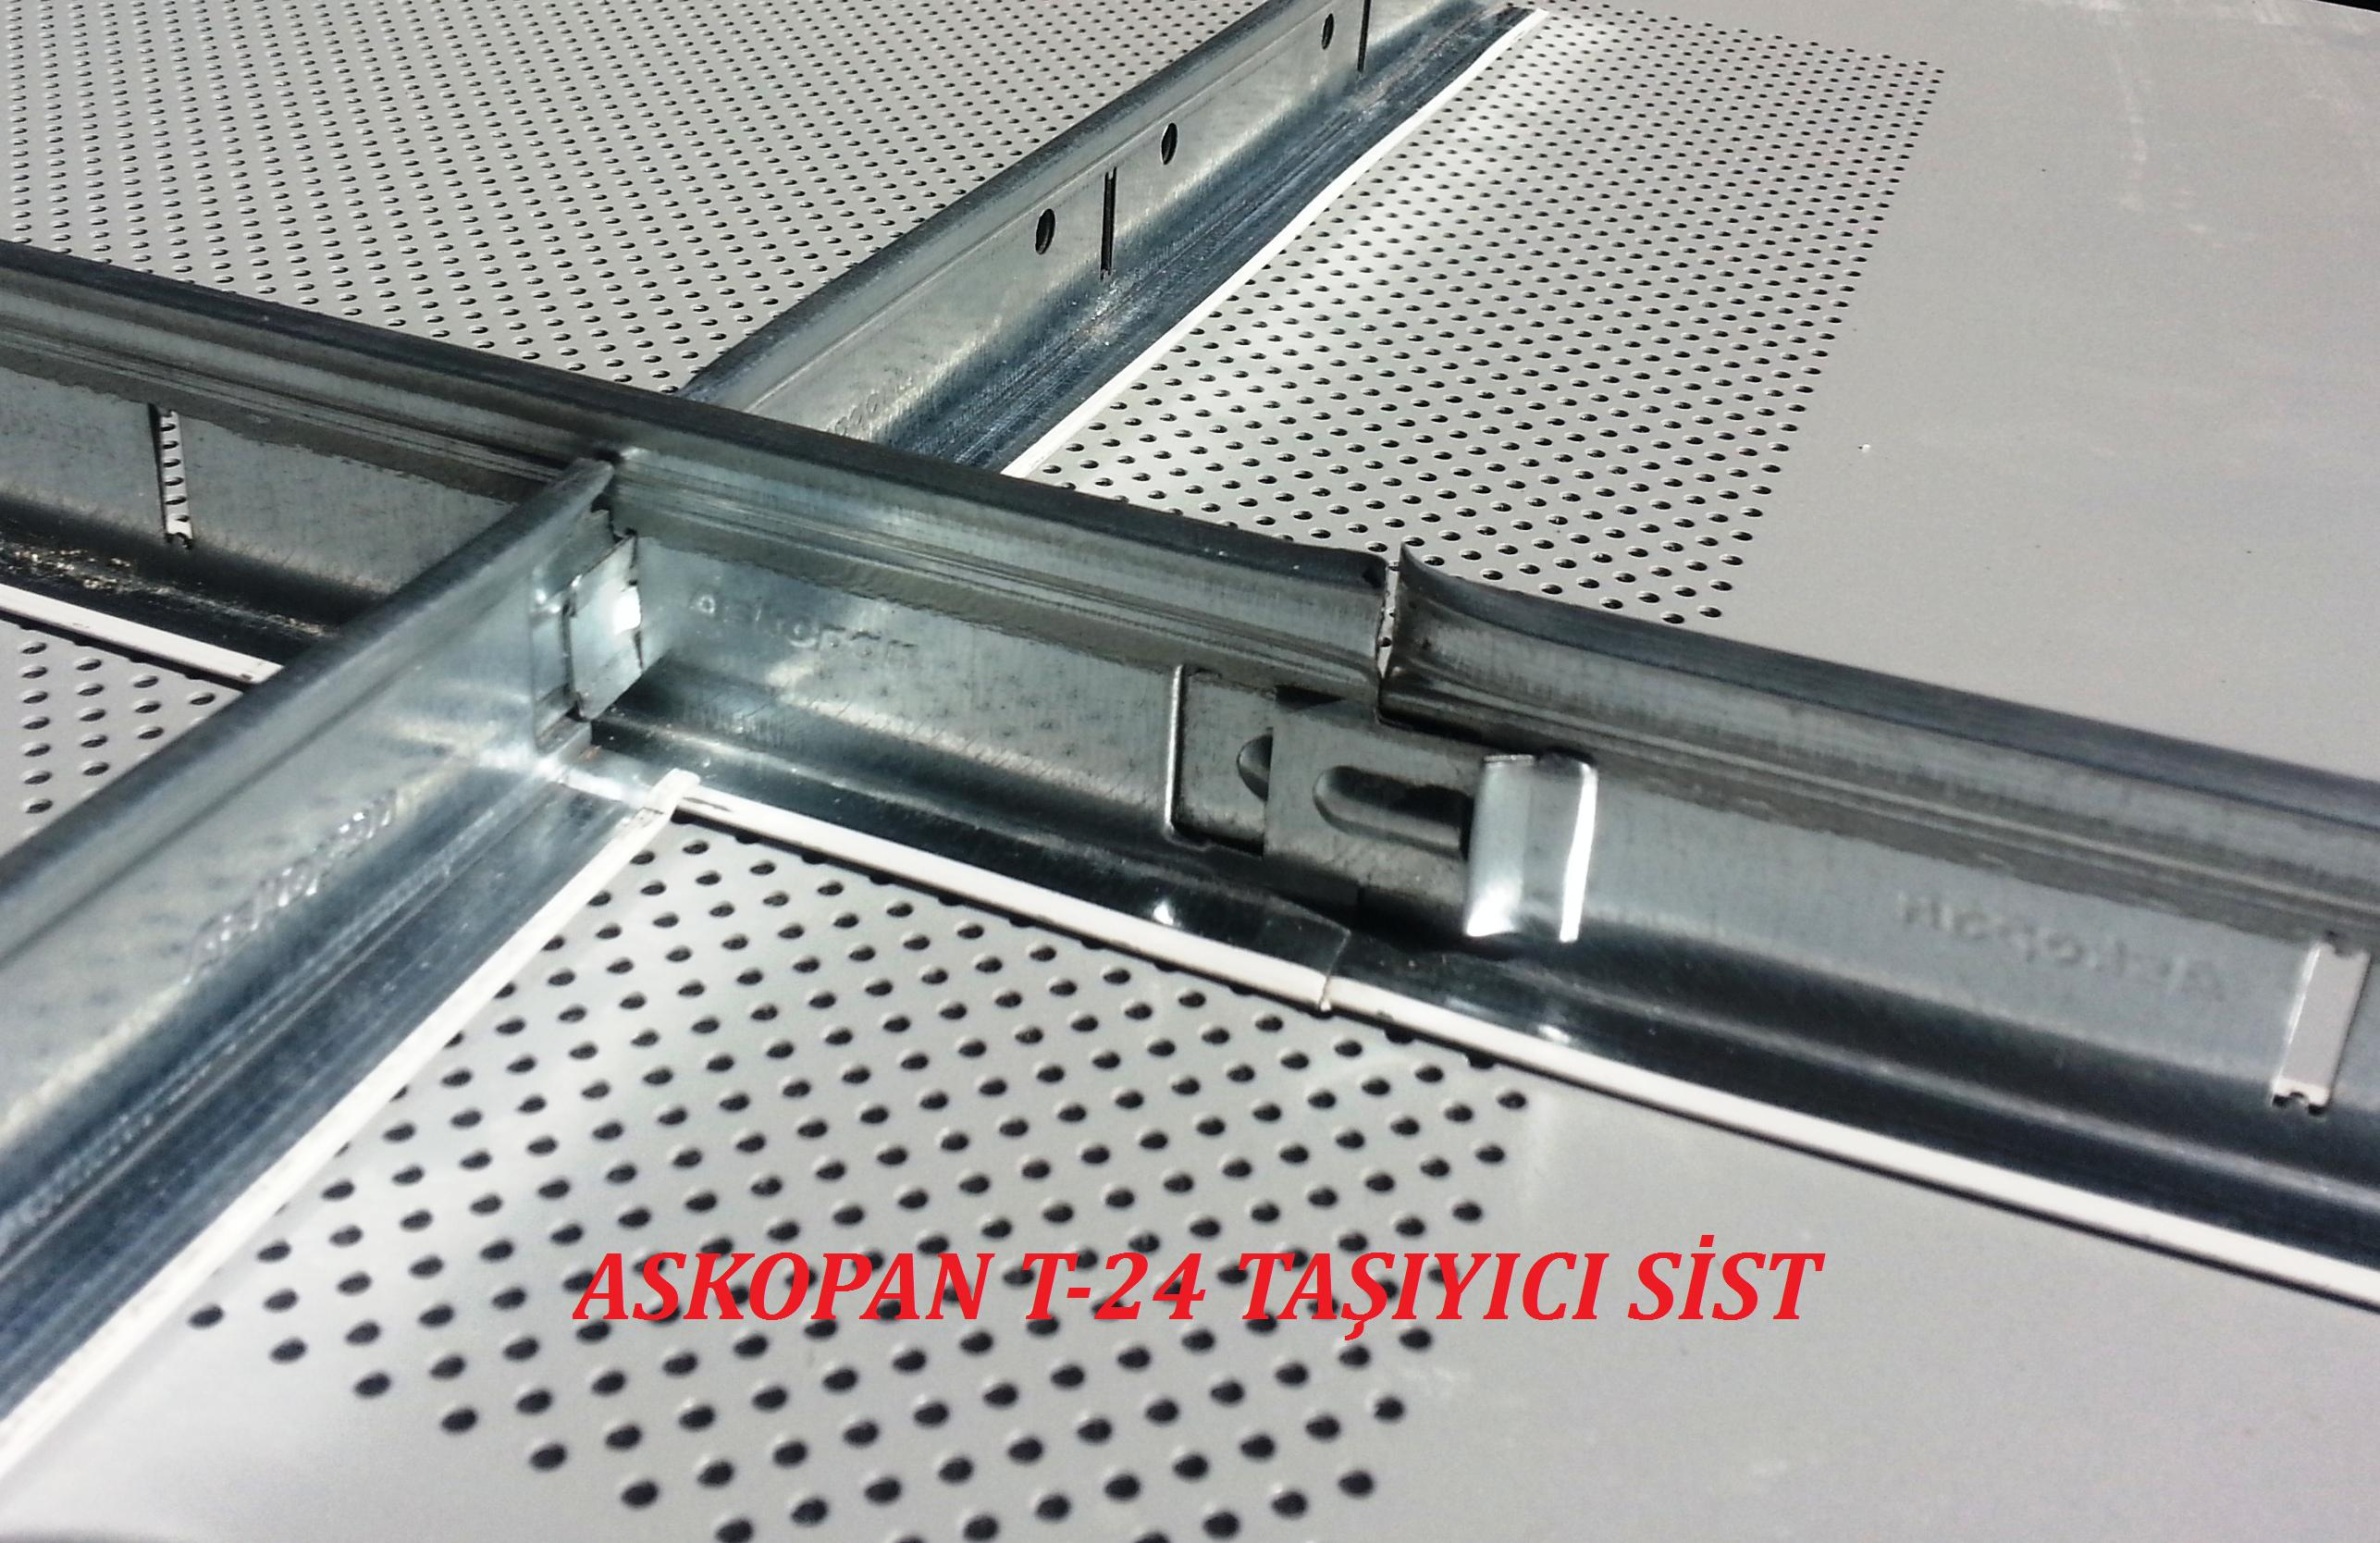 ASKOPAN SUSPENDED CEILING TILES